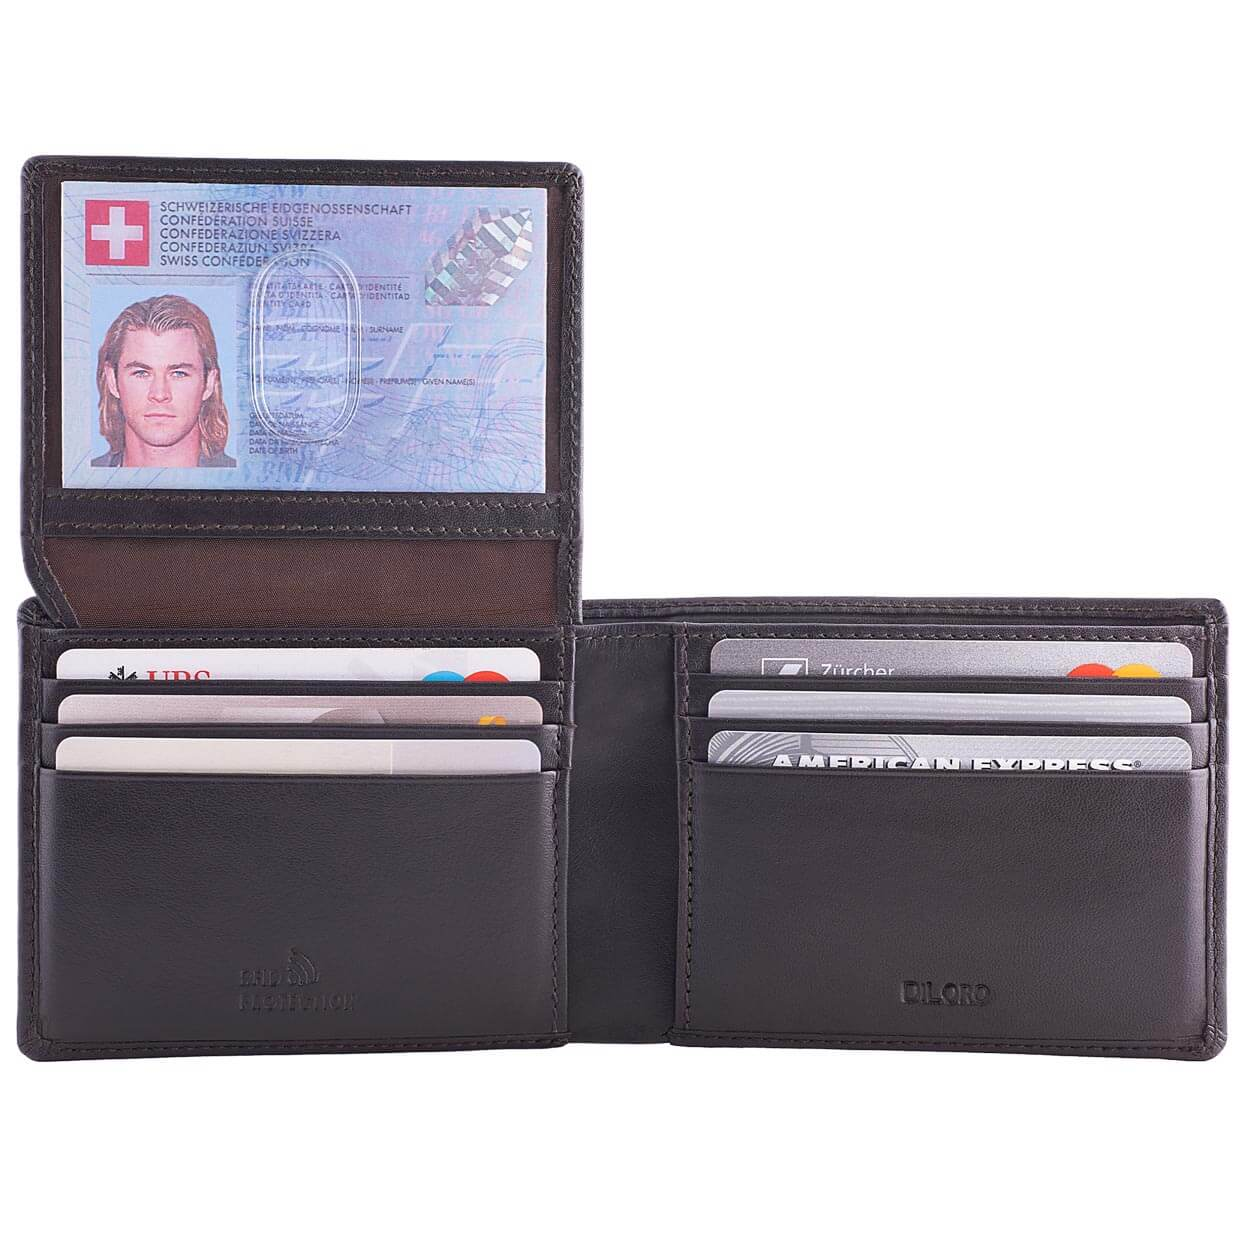 DiLoro Men's Leather Wallet Bifold 2 ID Windows RFID Protection -  Napa Brown Open Inside View ID Up